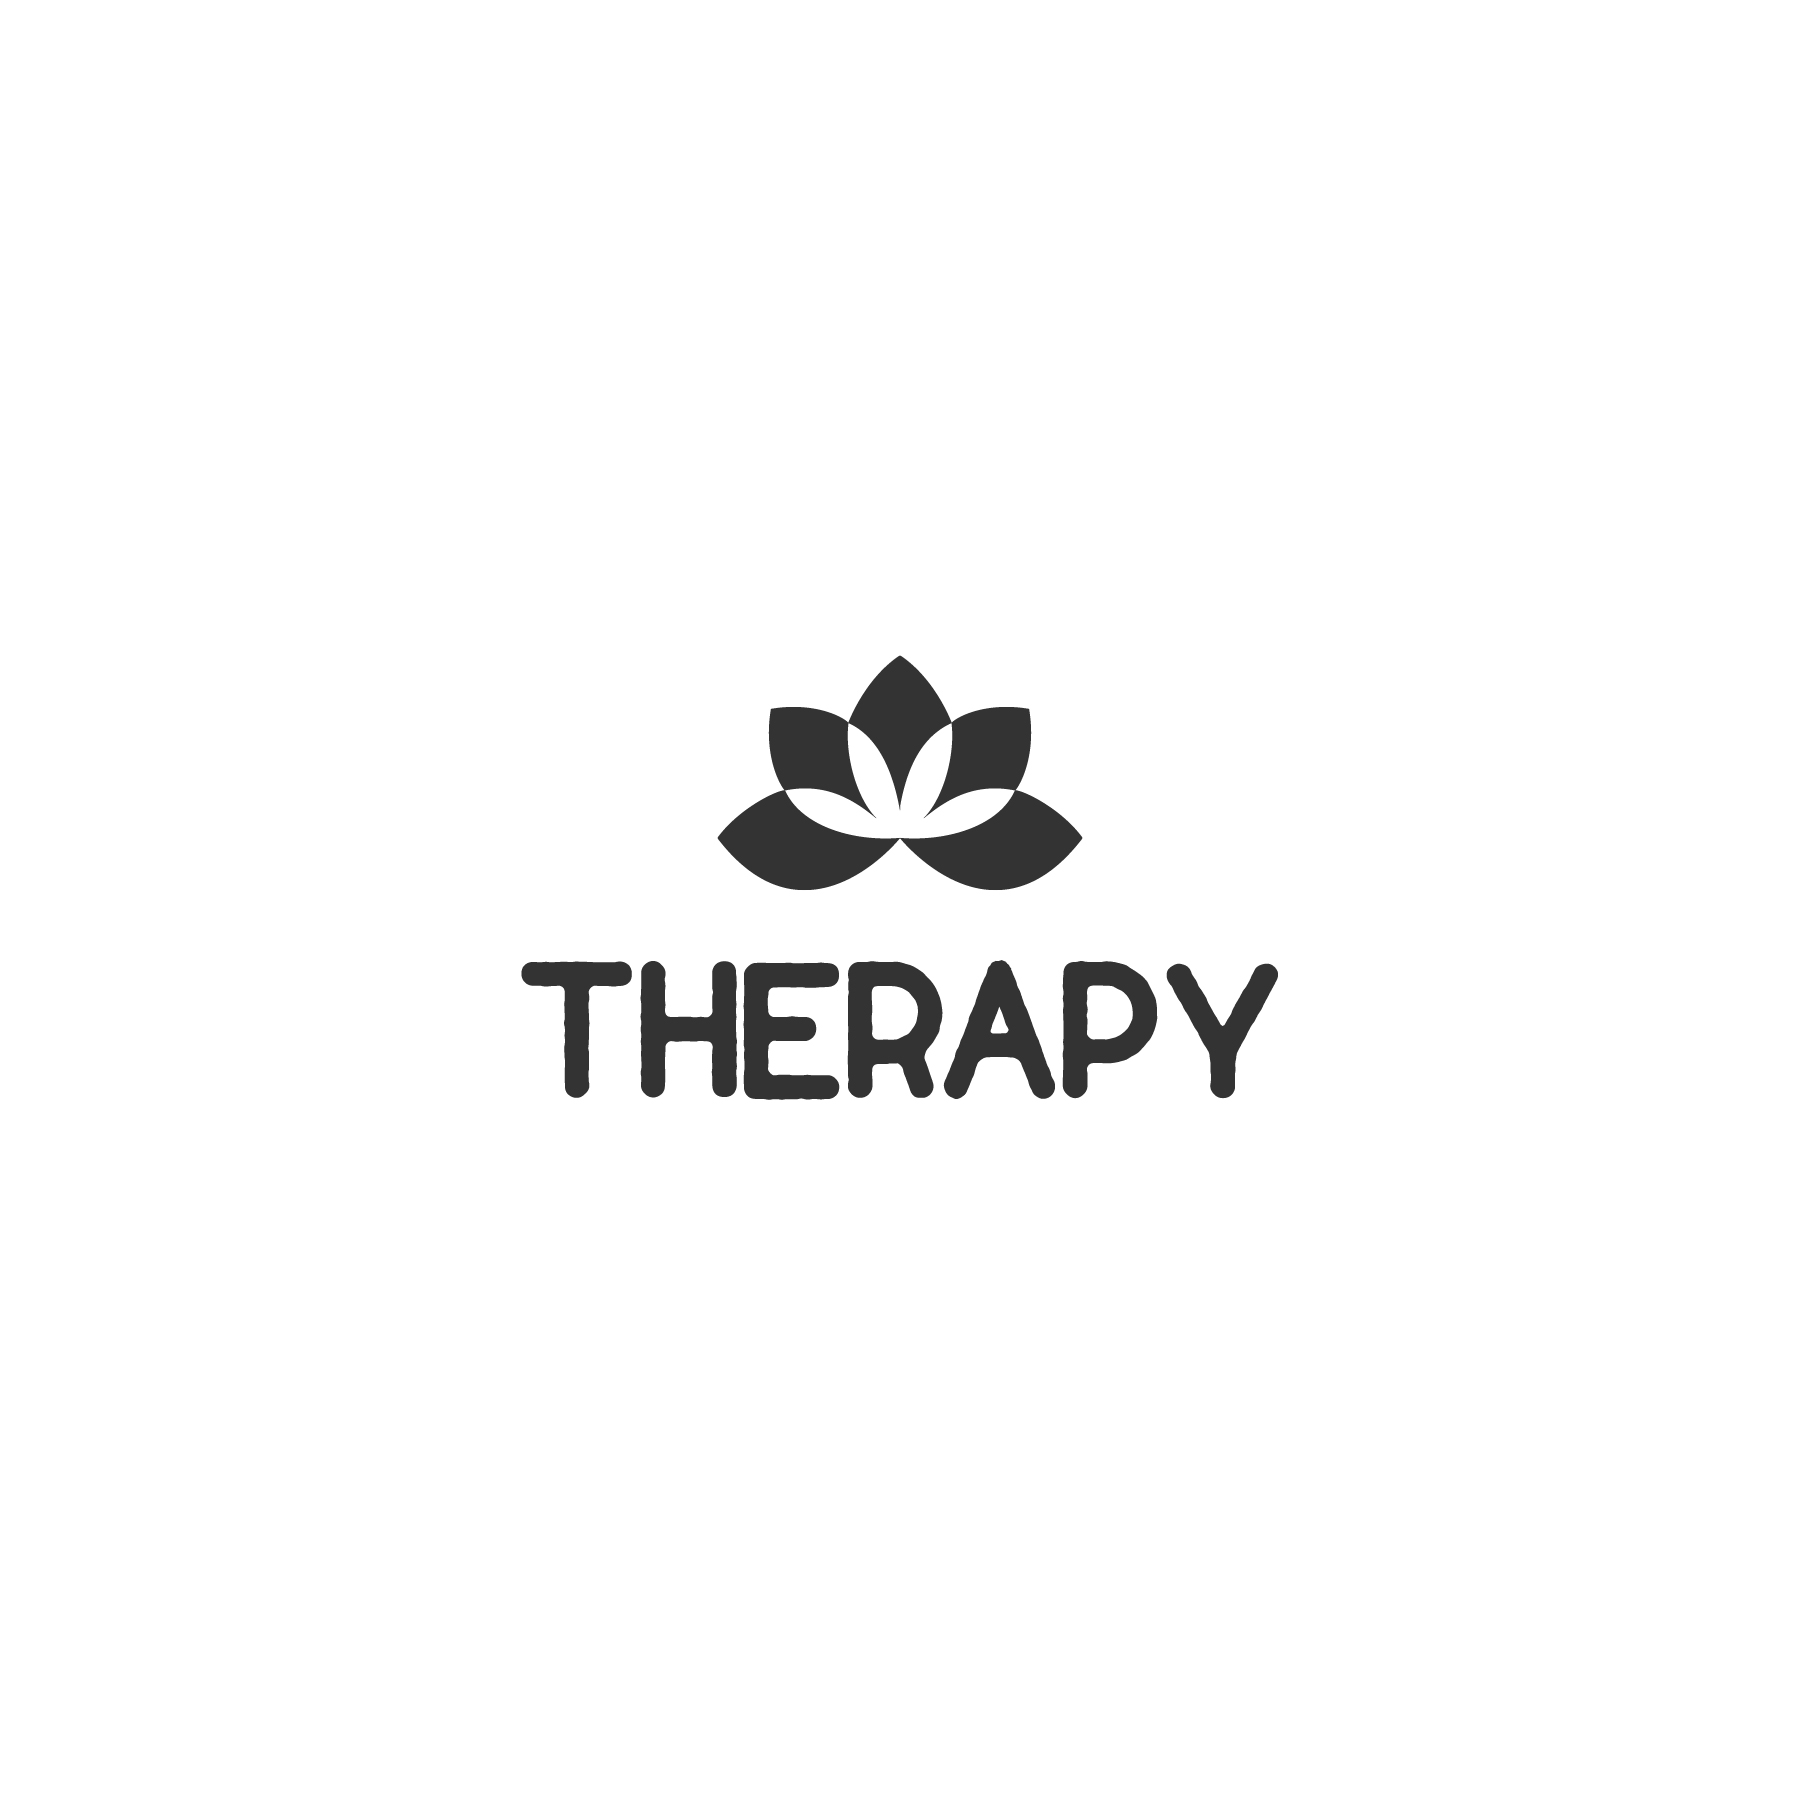 There are several therapy and counseling options to improve your well-being that includes psychotherapy, group therapy, substance abuse counseling and nutrition counseling.